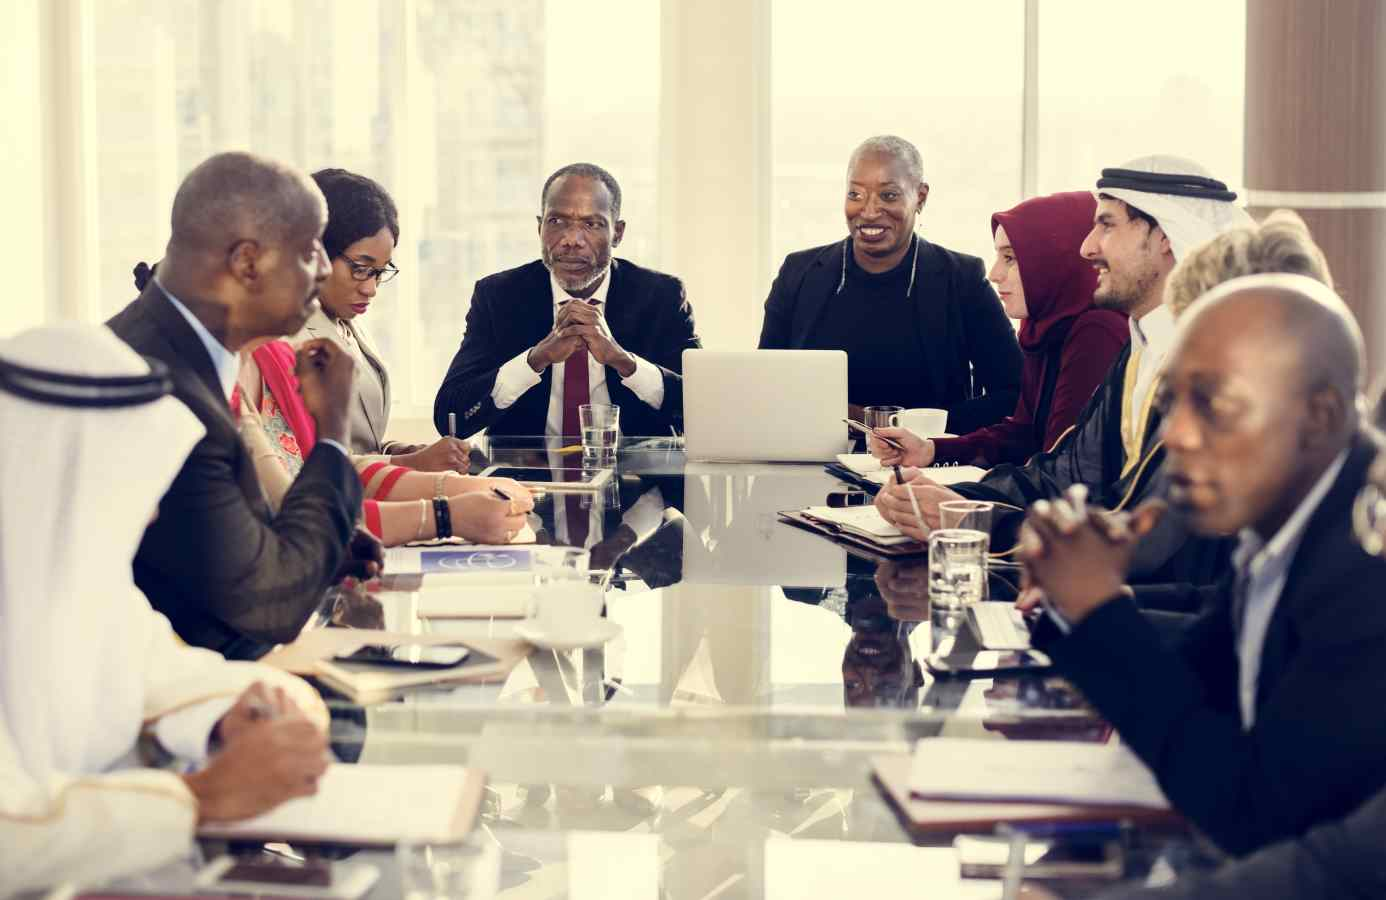 Persons of various cultures doing business around a conference table.